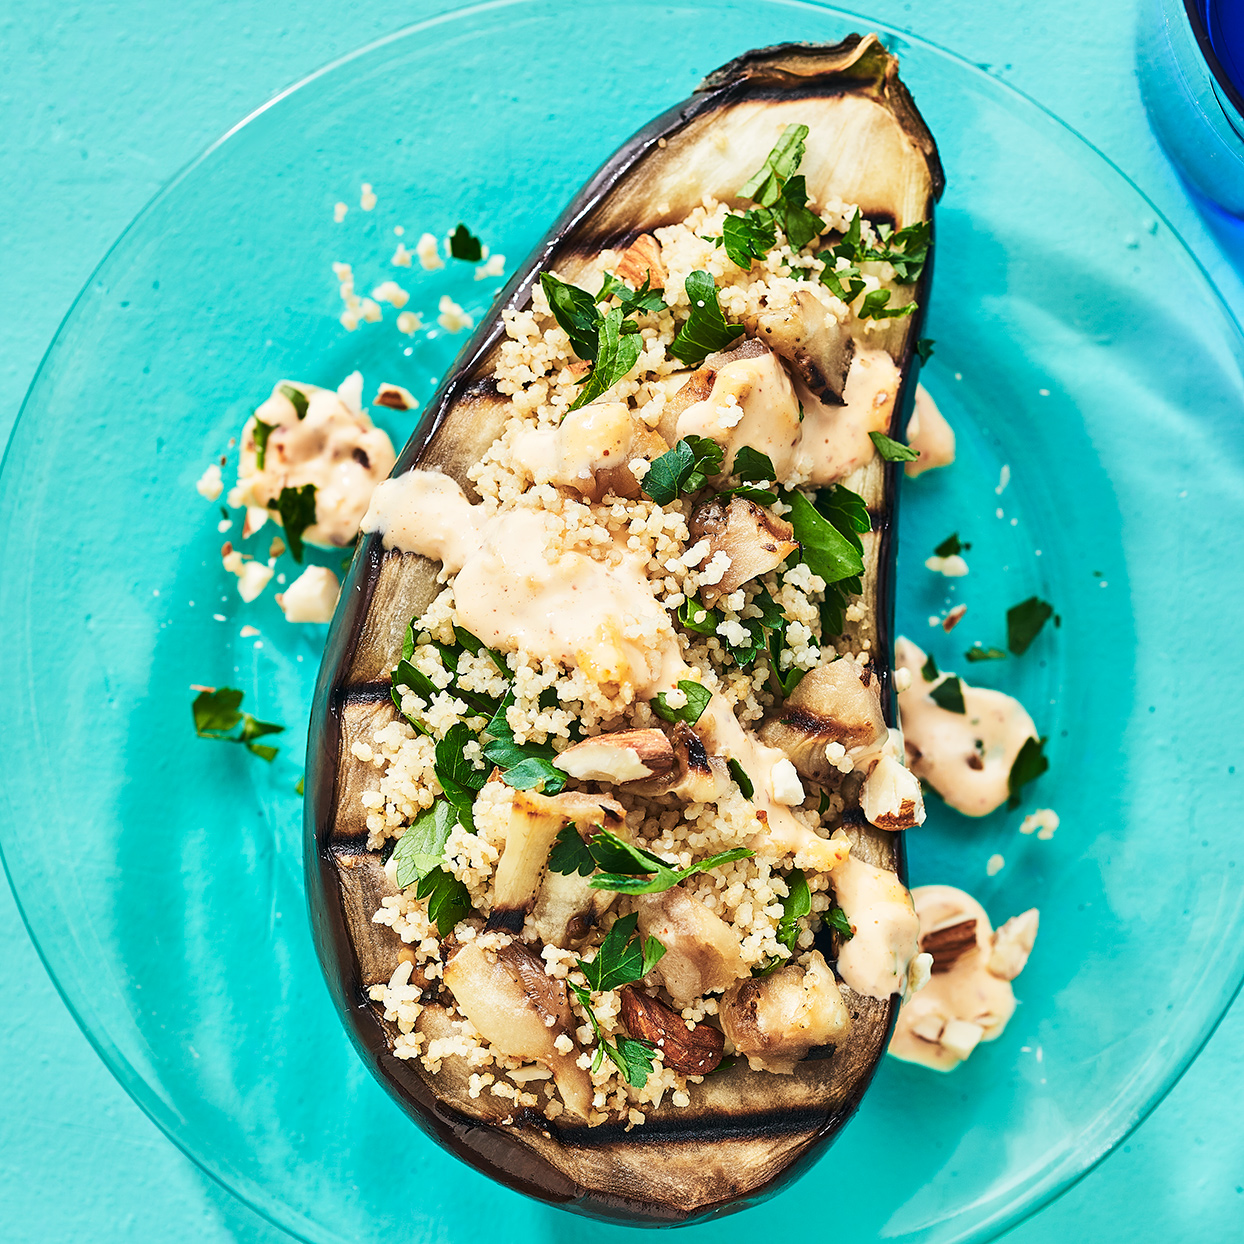 Smoky almonds, meaty eggplant and whole-grain couscous with herbs make this meal plenty satisfying. Harissa gives the creamy sauce a little kick. Source: EatingWell Magazine, July / August 2020